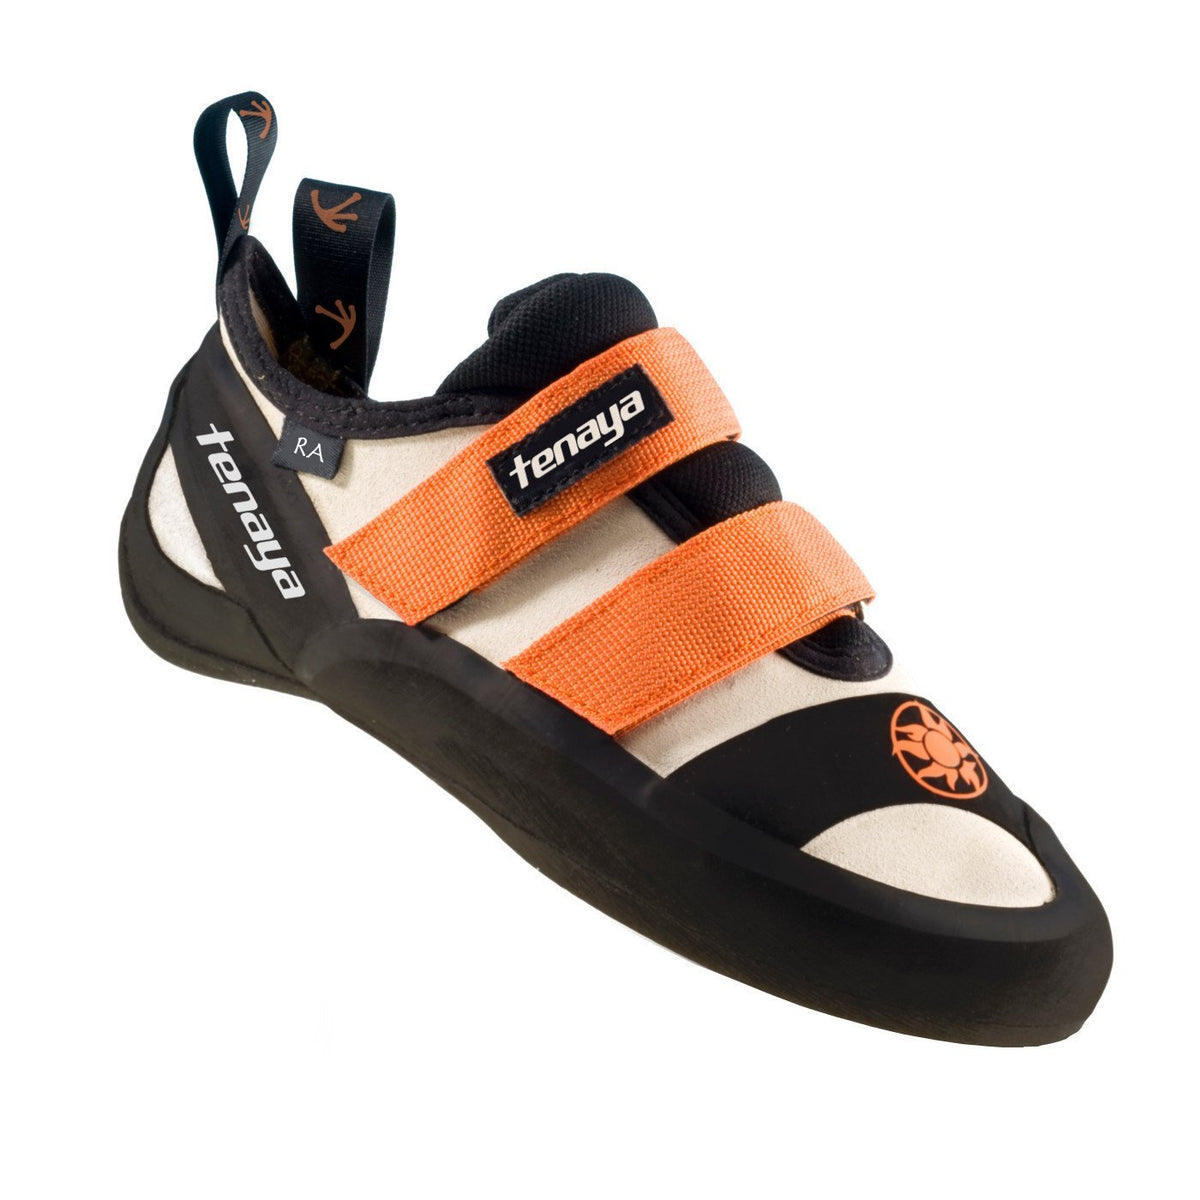 Tenaya Ra climbing shoe black, cream and orange